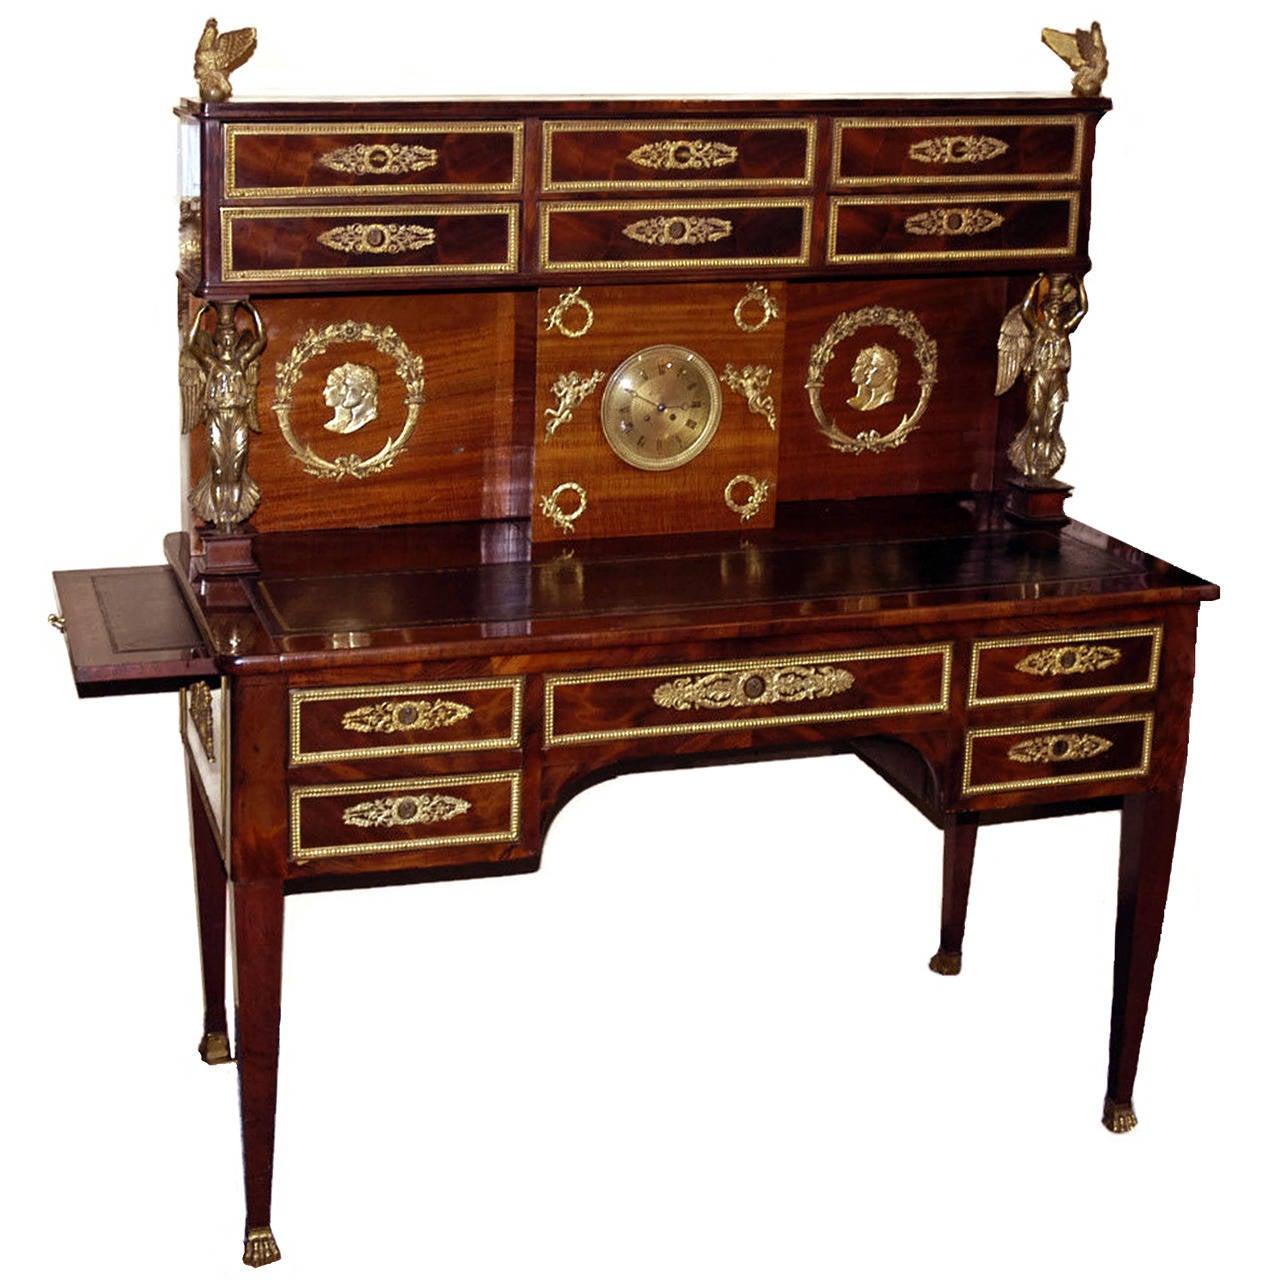 Bureau plat gradin with napoleonic theme for sale at 1stdibs for Bureau table